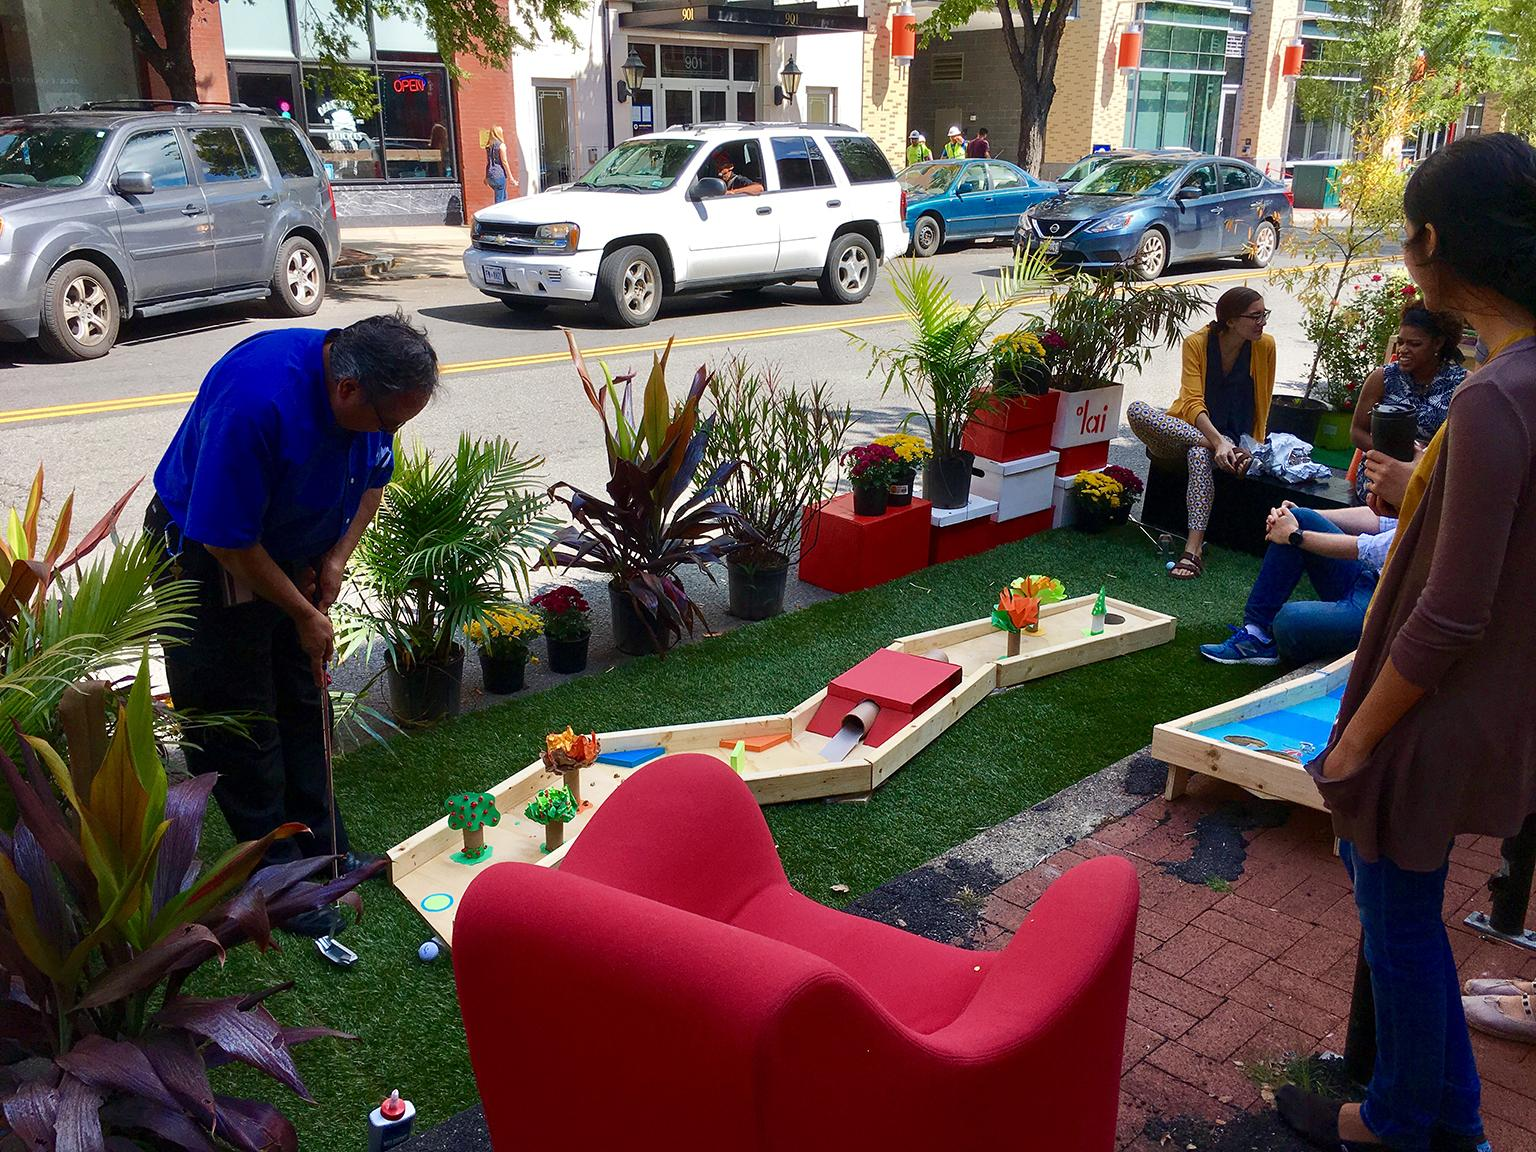 A miniature golf course takes over a parking space for PARK(ing) Day. (airbus777 / Flickr)